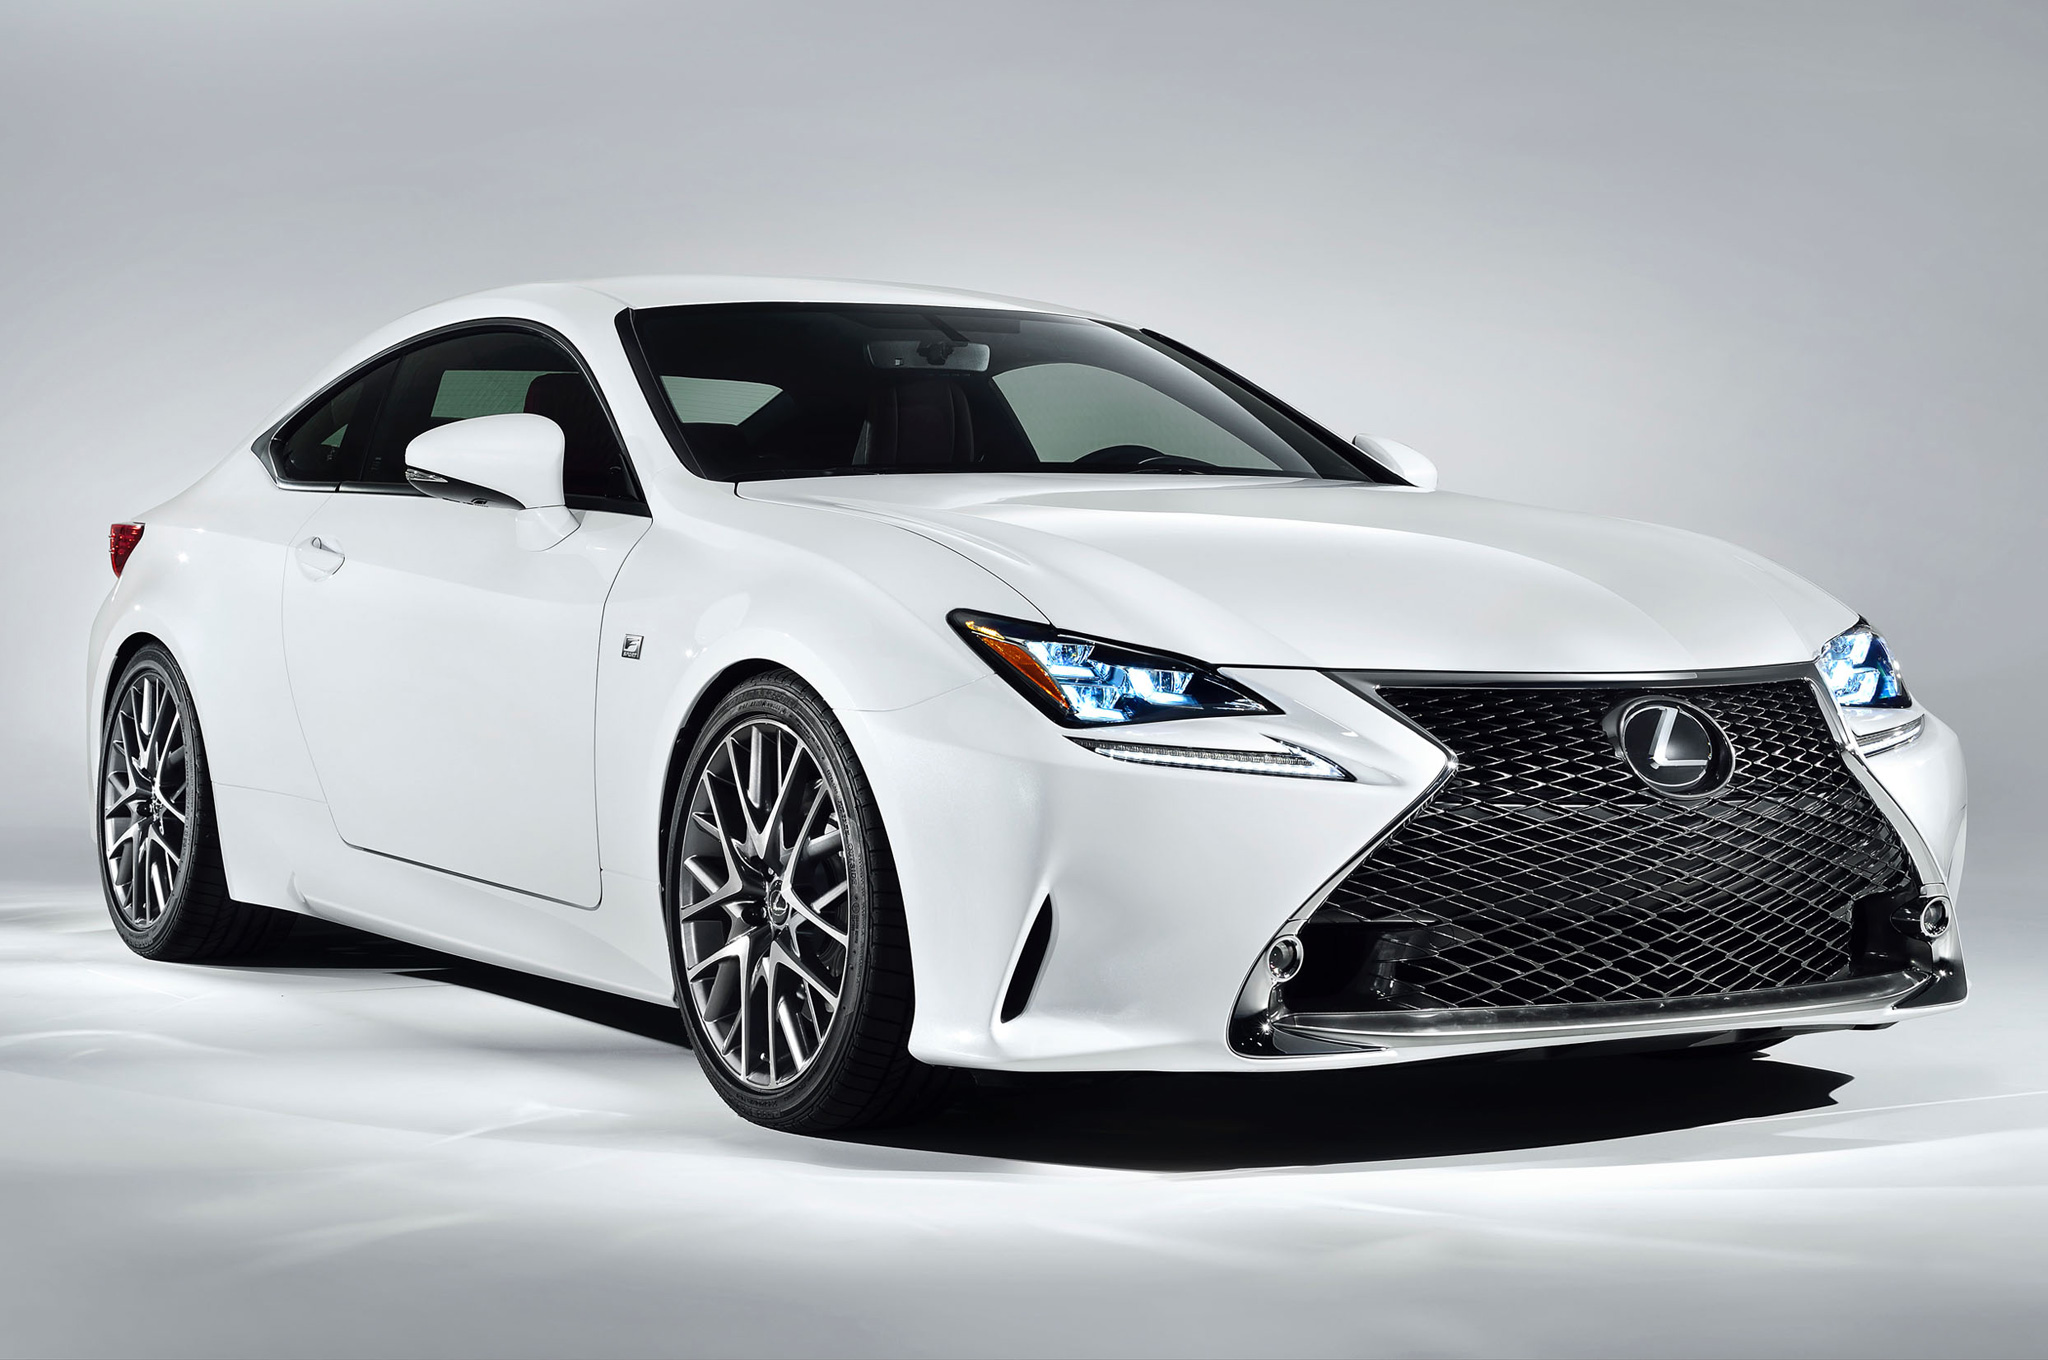 review lexus overview photos specs prices car price h ratings is the and connection